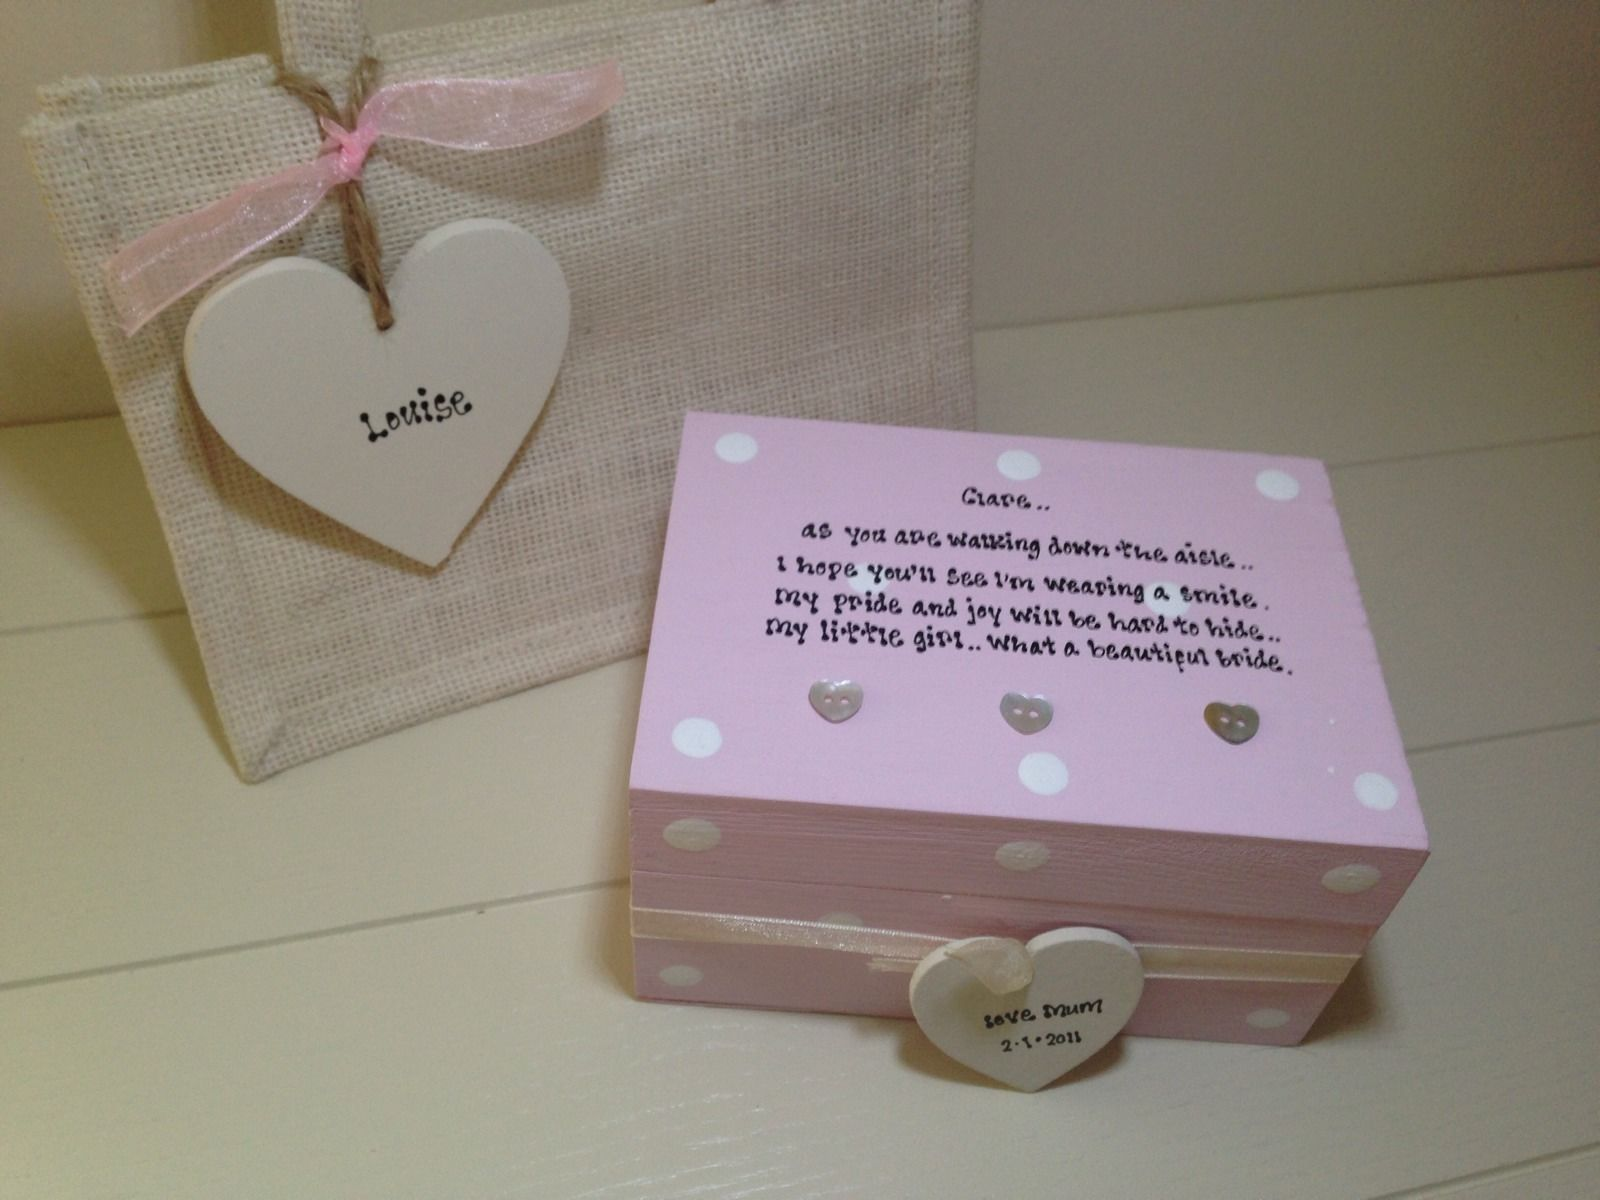 Wedding Gift For Our Daughter : Ideas Gifts From Mother To Daughter On Wedding Day shabby personalised ...